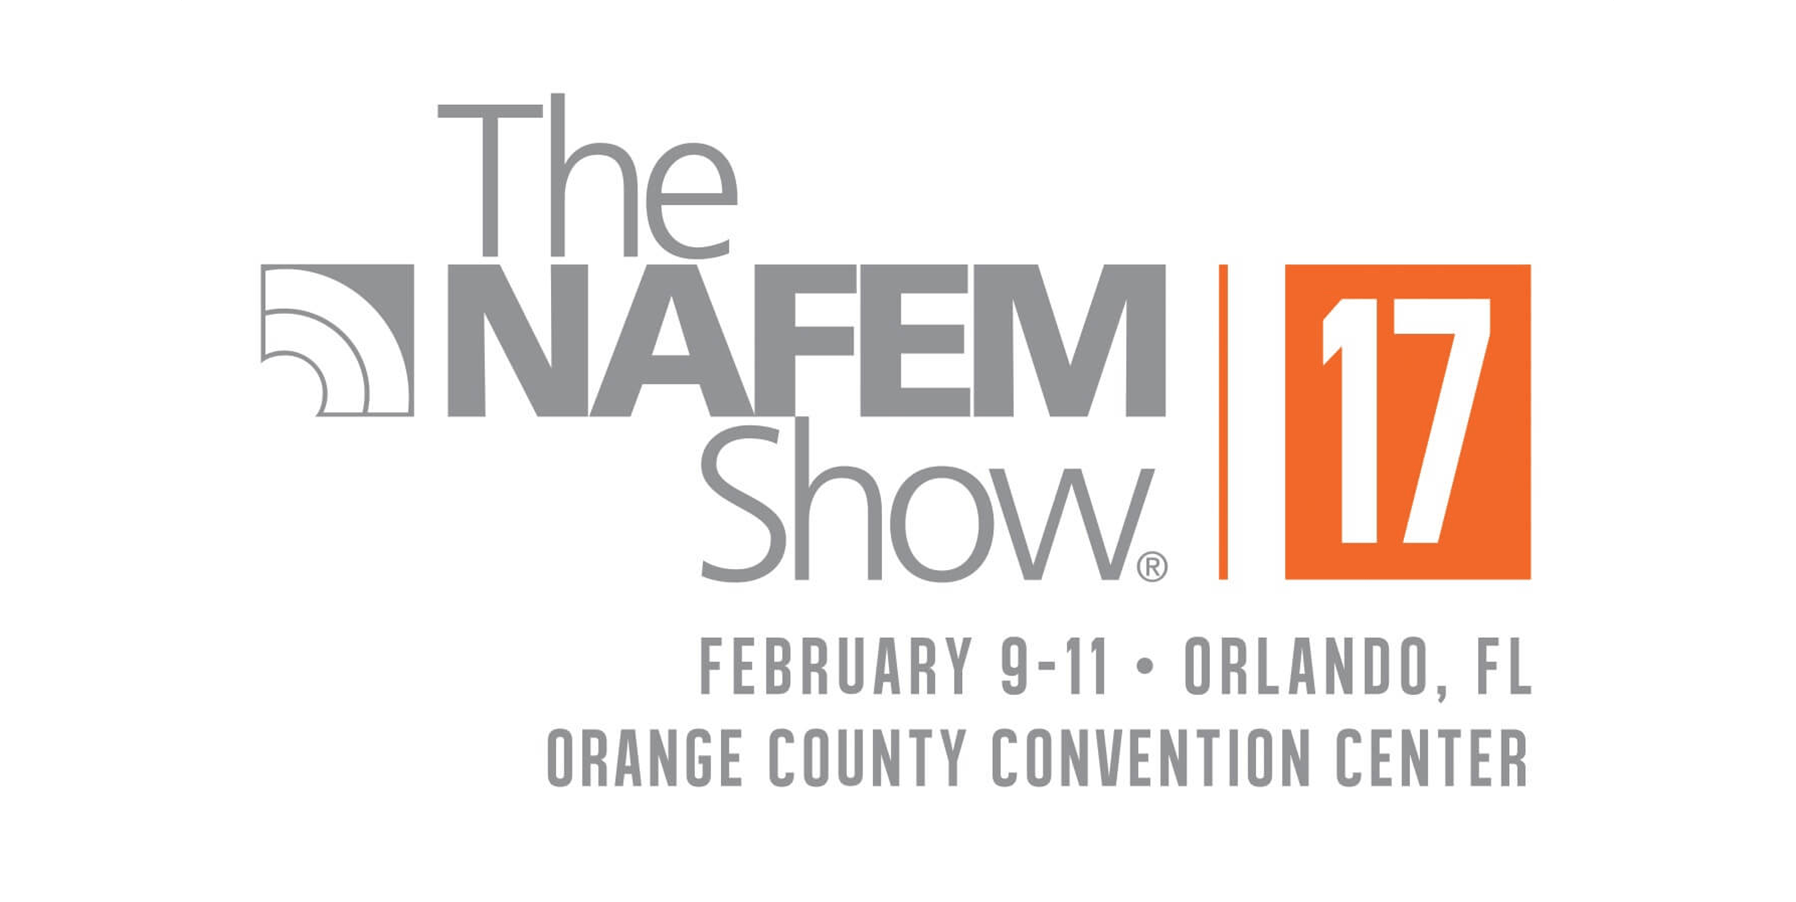 FEBRUARY 9, 2017 / New Products, Big Changes and the All-New ITW Kitchen Experience on Display at The NAFEM Show 2017